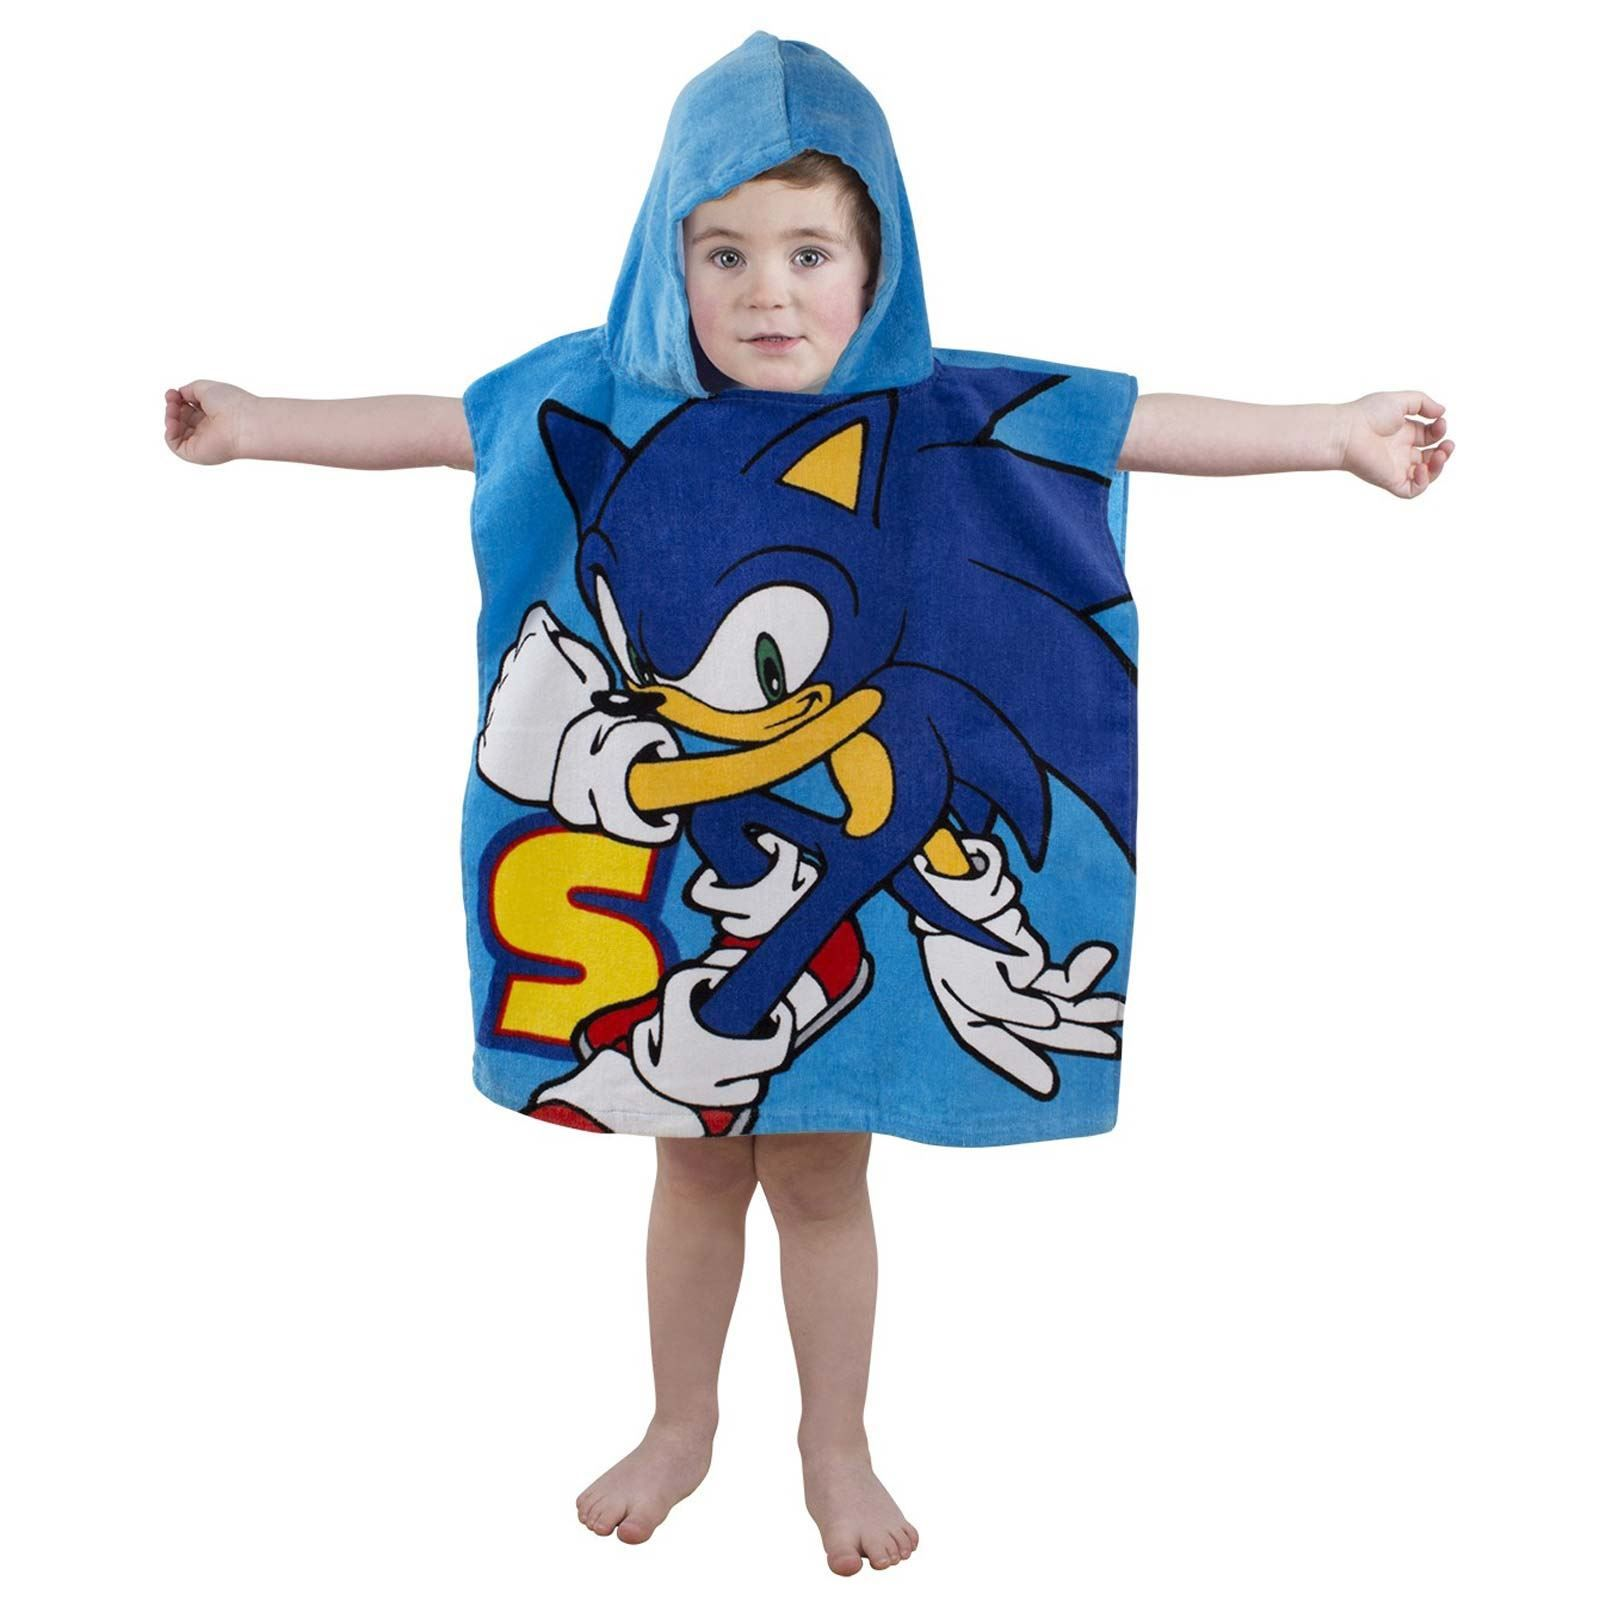 SONIC THE HEDGEHOG BEDROOM SINGLE DOUBLE DUVET COVERS. SONIC THE HEDGEHOG BEDROOM   SINGLE   DOUBLE DUVET COVERS